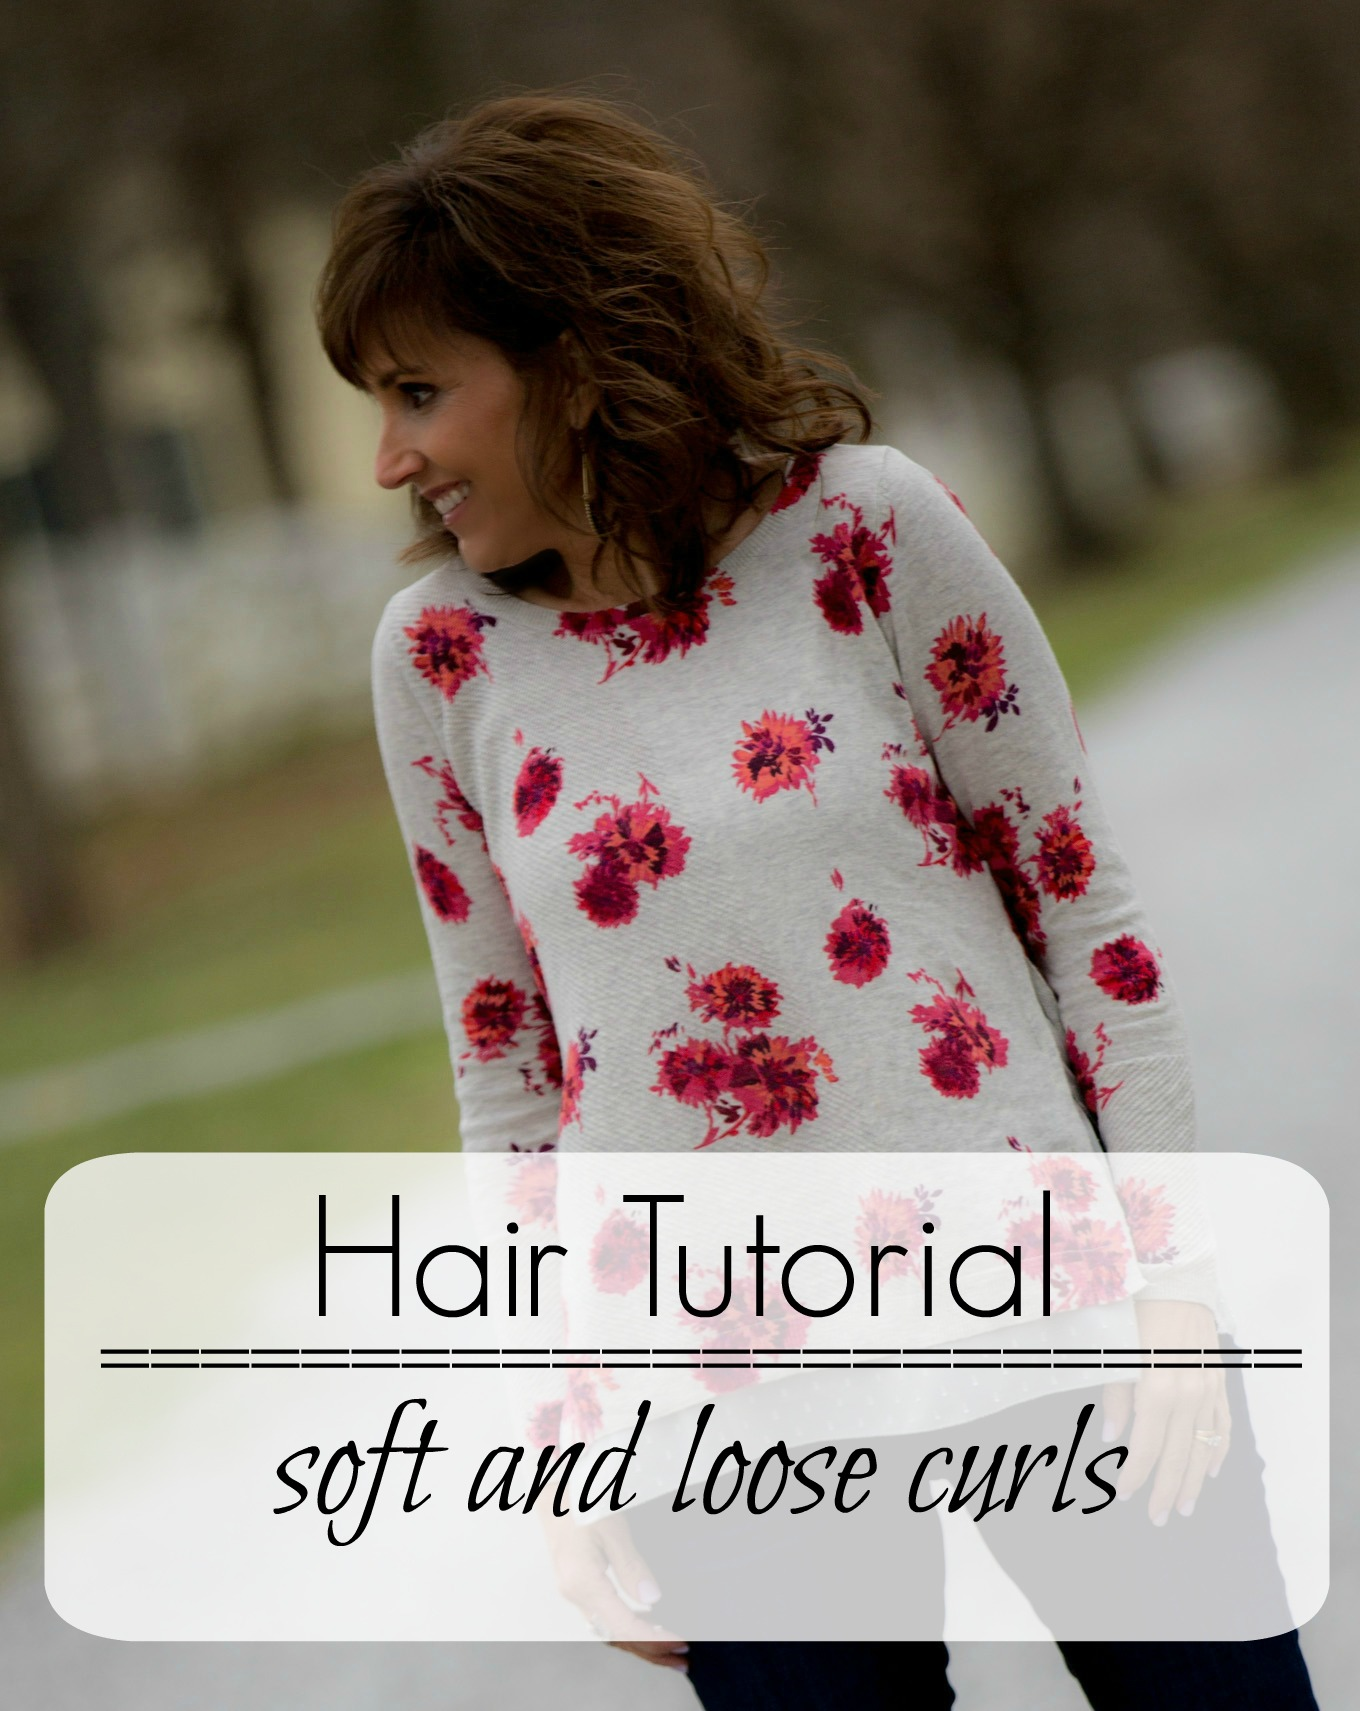 Fashion blogger, Cyndi Spivey, shares How To Add Soft Curls To Your Hair.